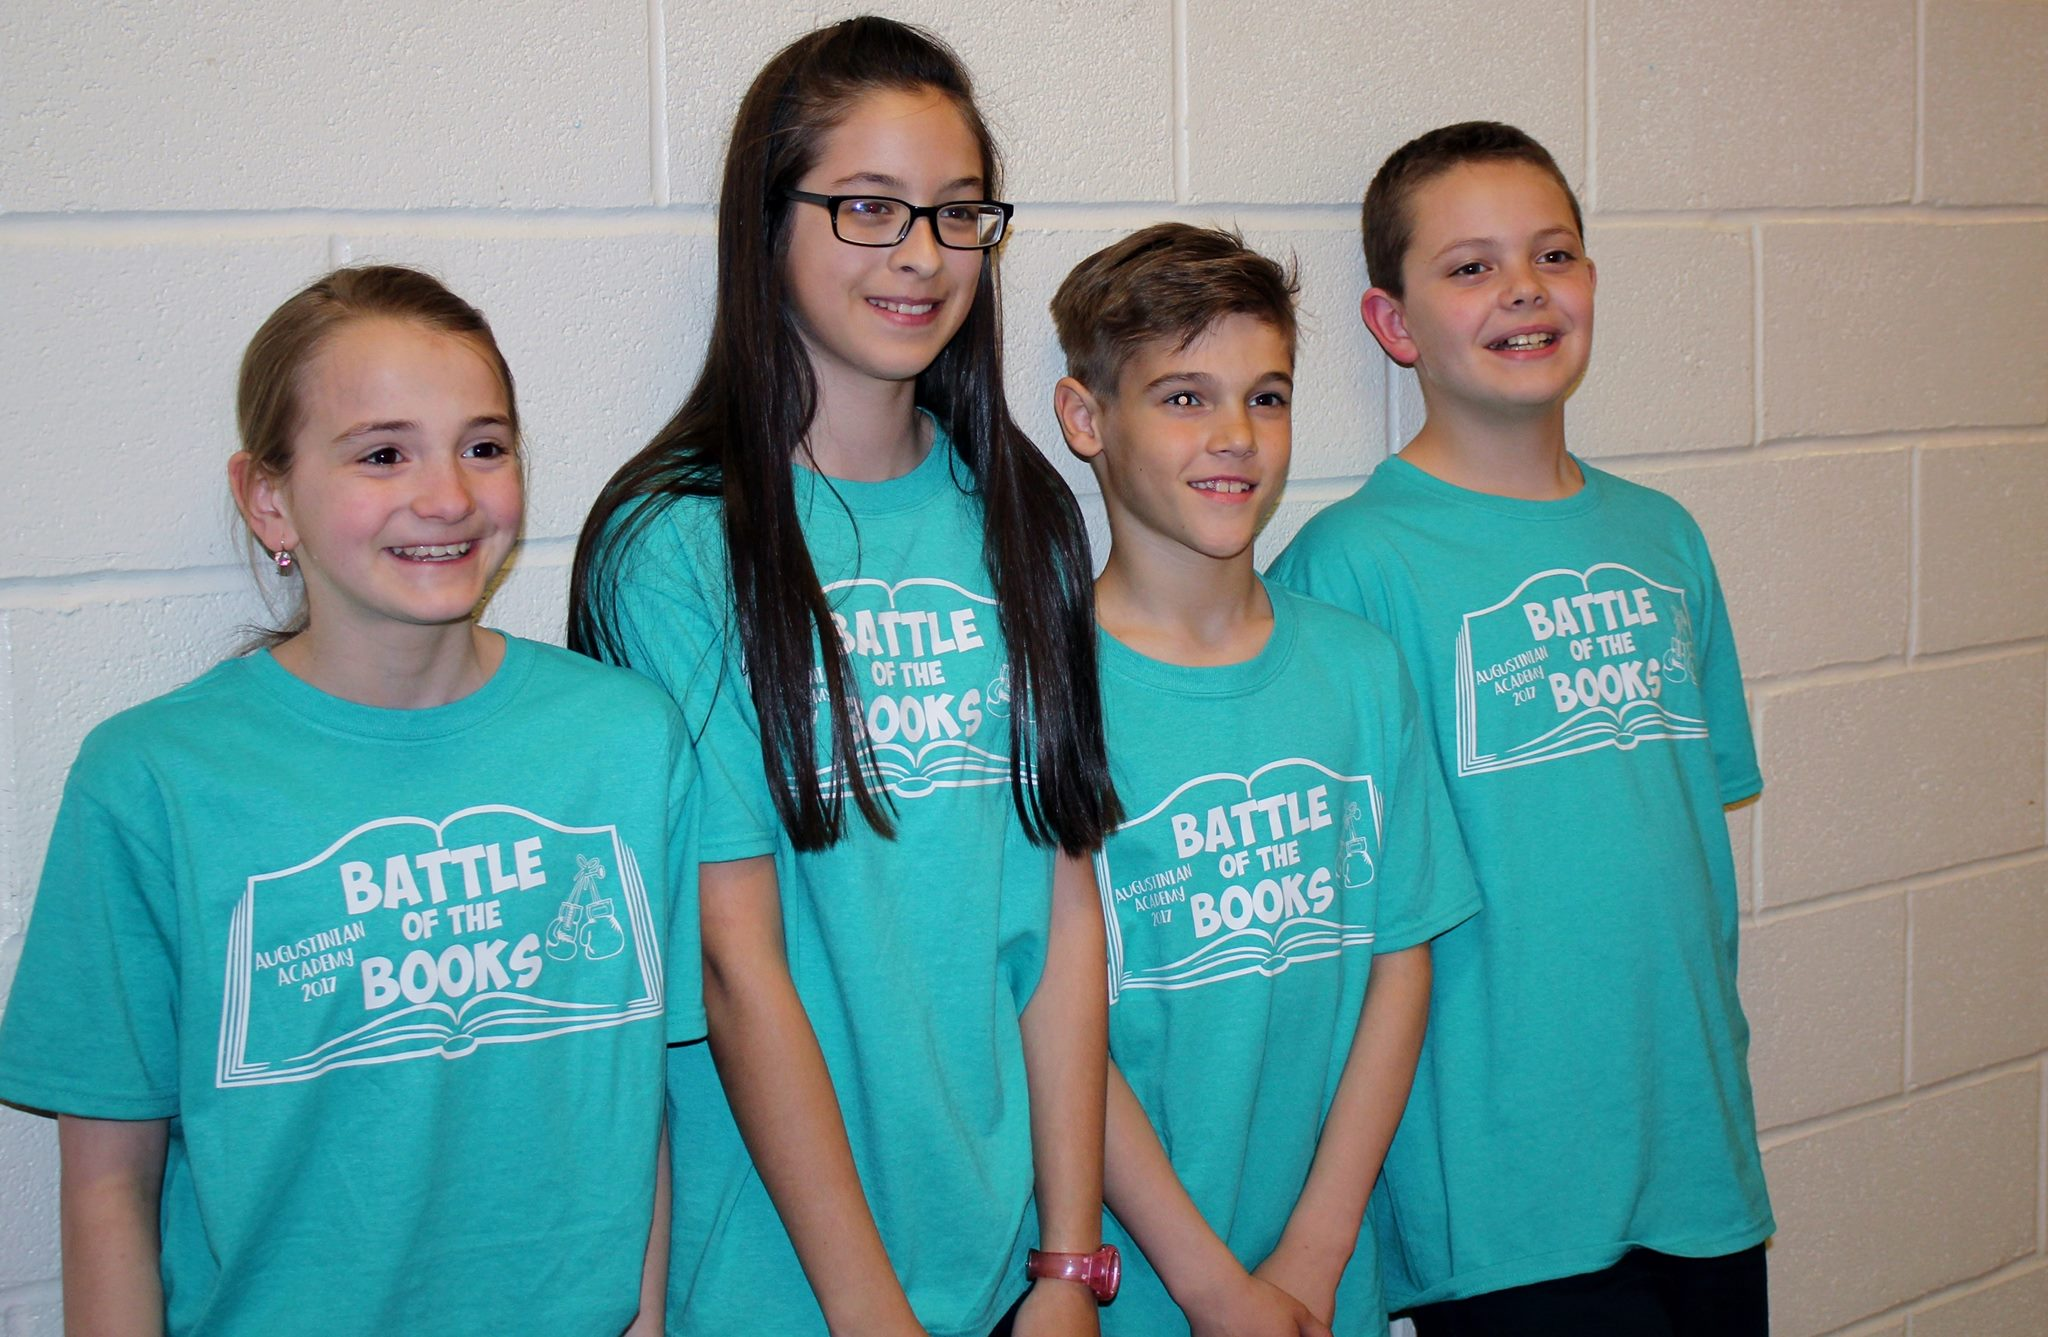 battle of books